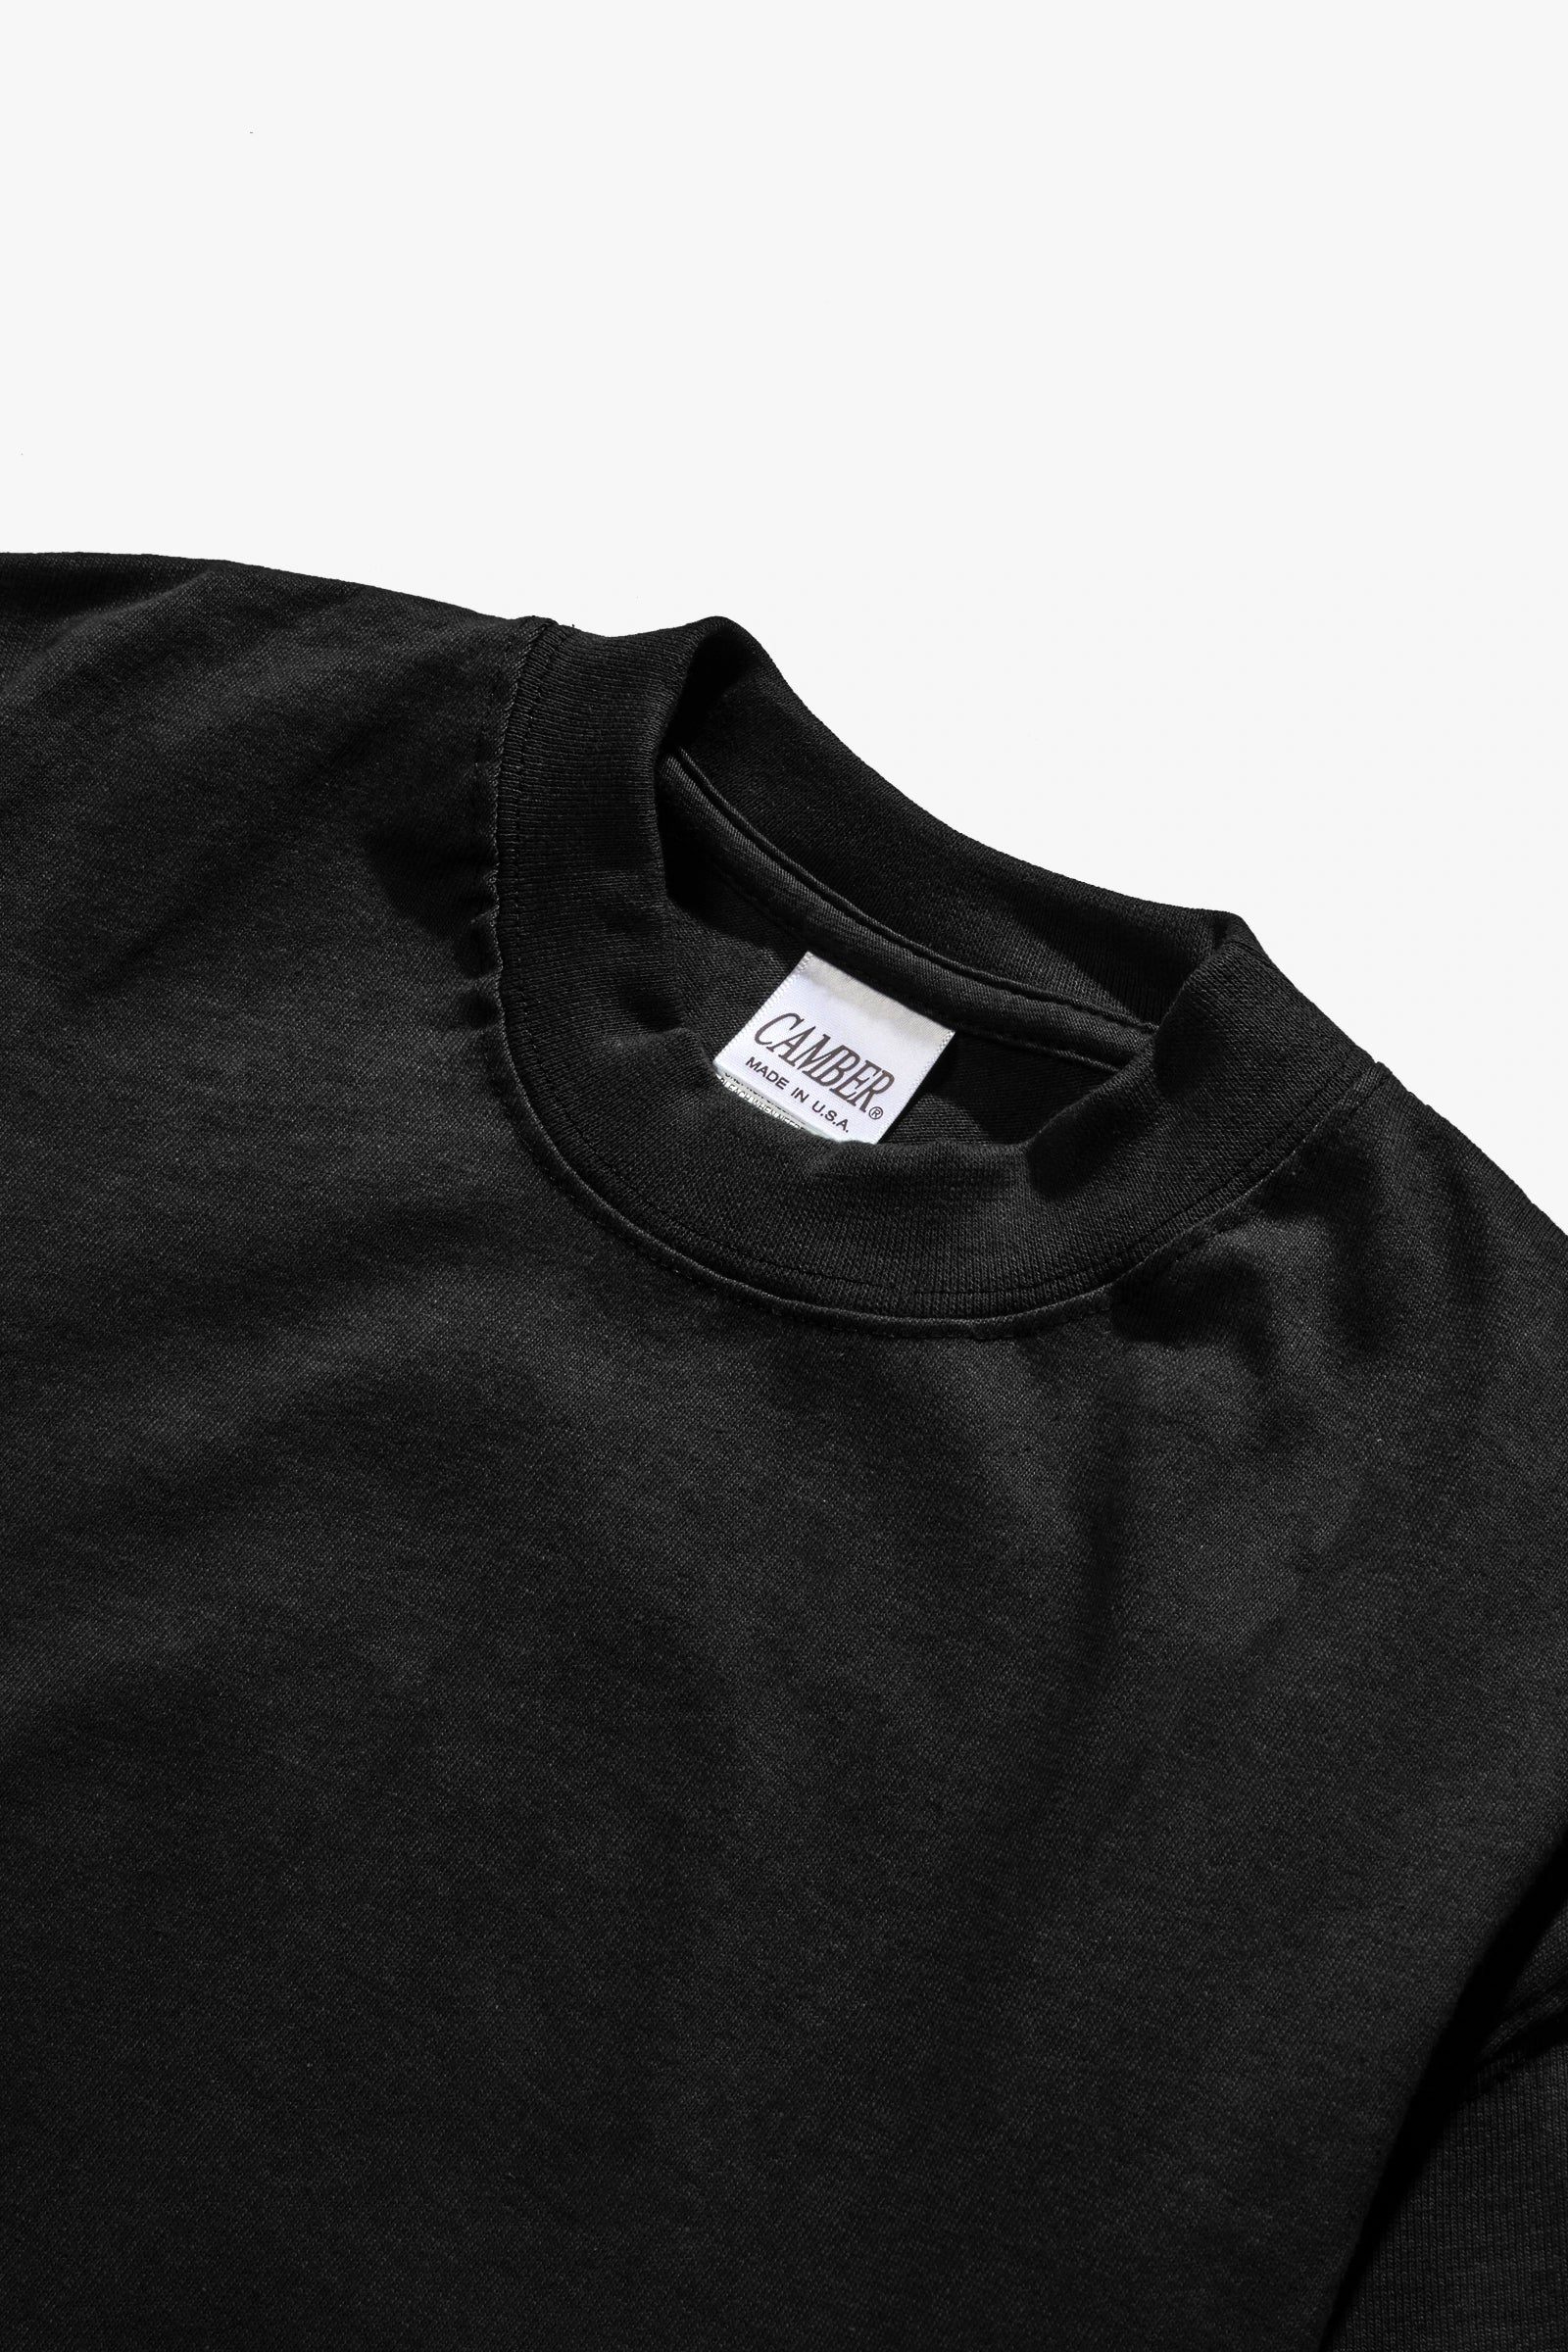 Camber USA - 301 8oz Tee - Black